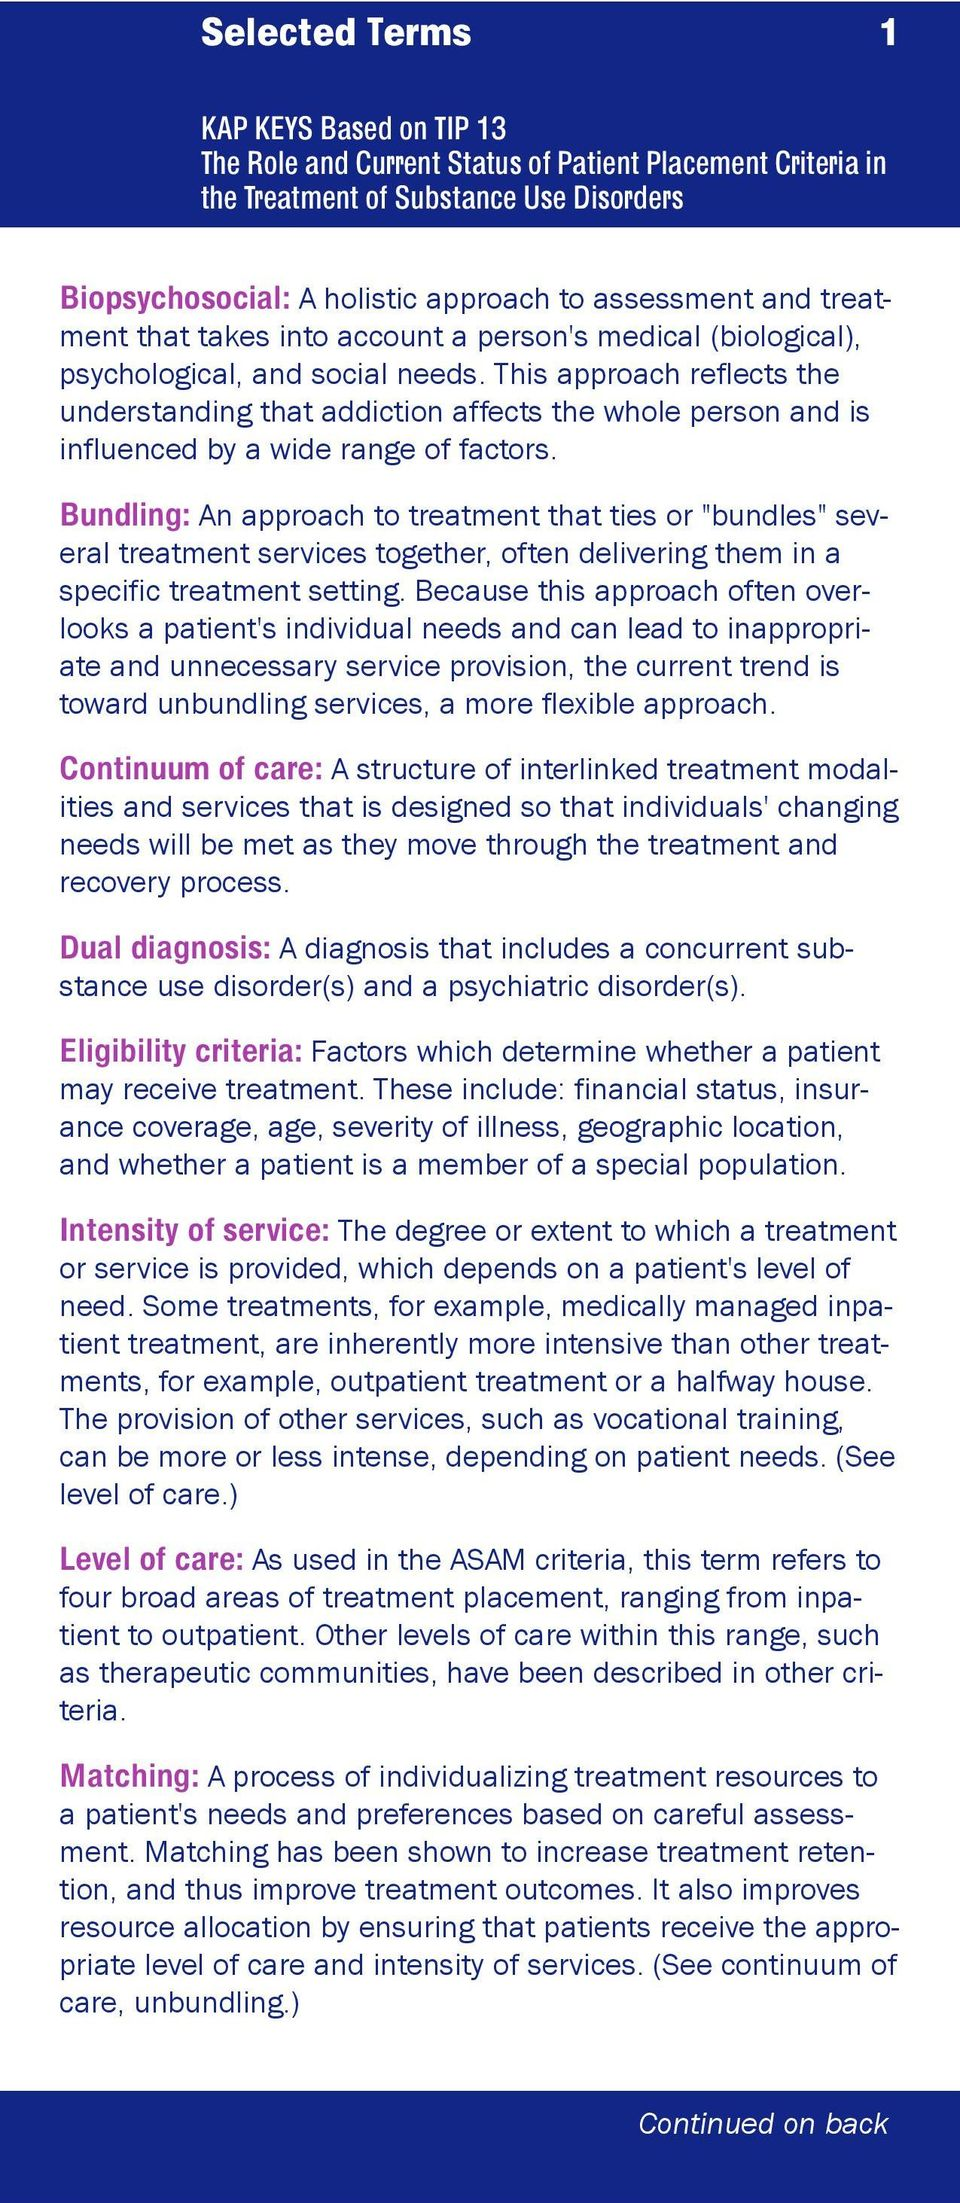 "Bundling: An approach to treatment that ties or ""bundles"" several treatment services together, often delivering them in a specific treatment setting."